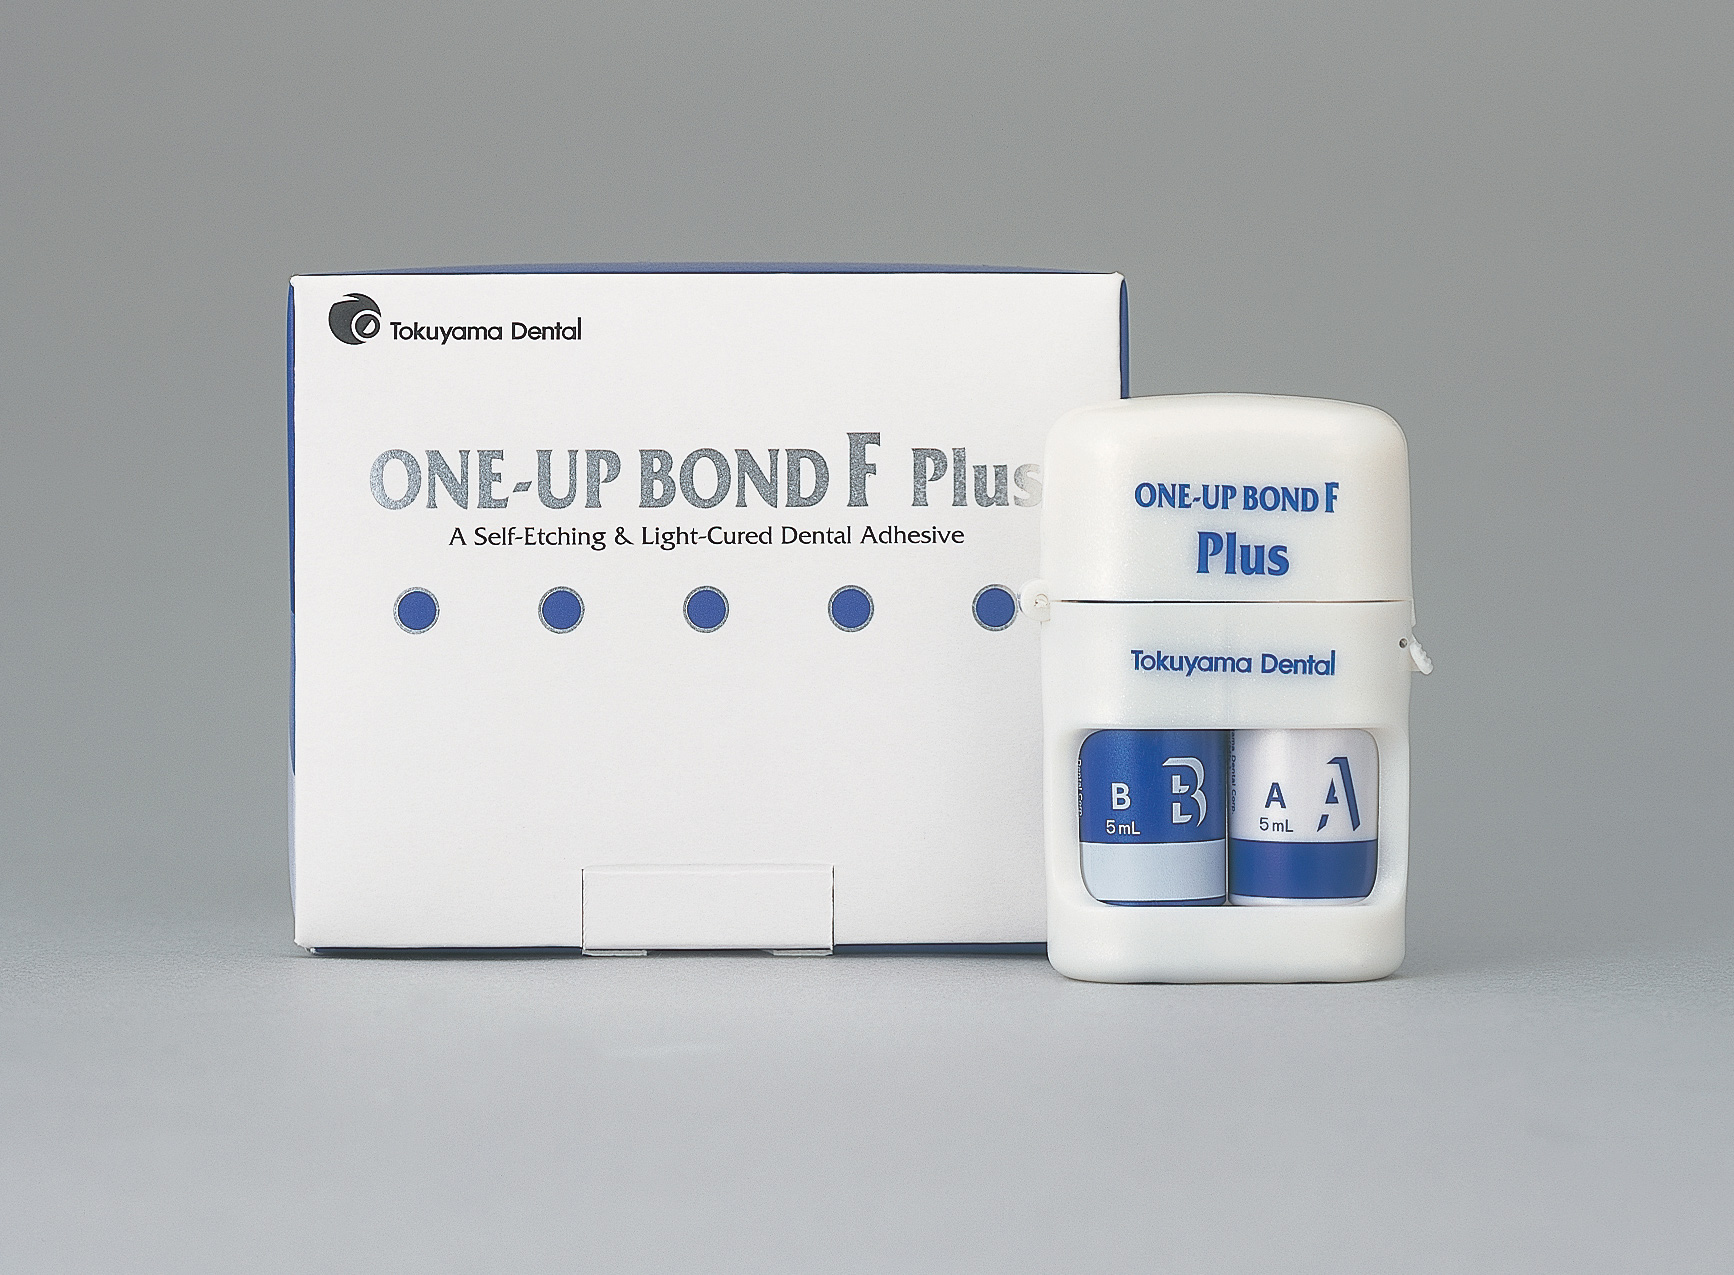 One-Up Bond F Plus